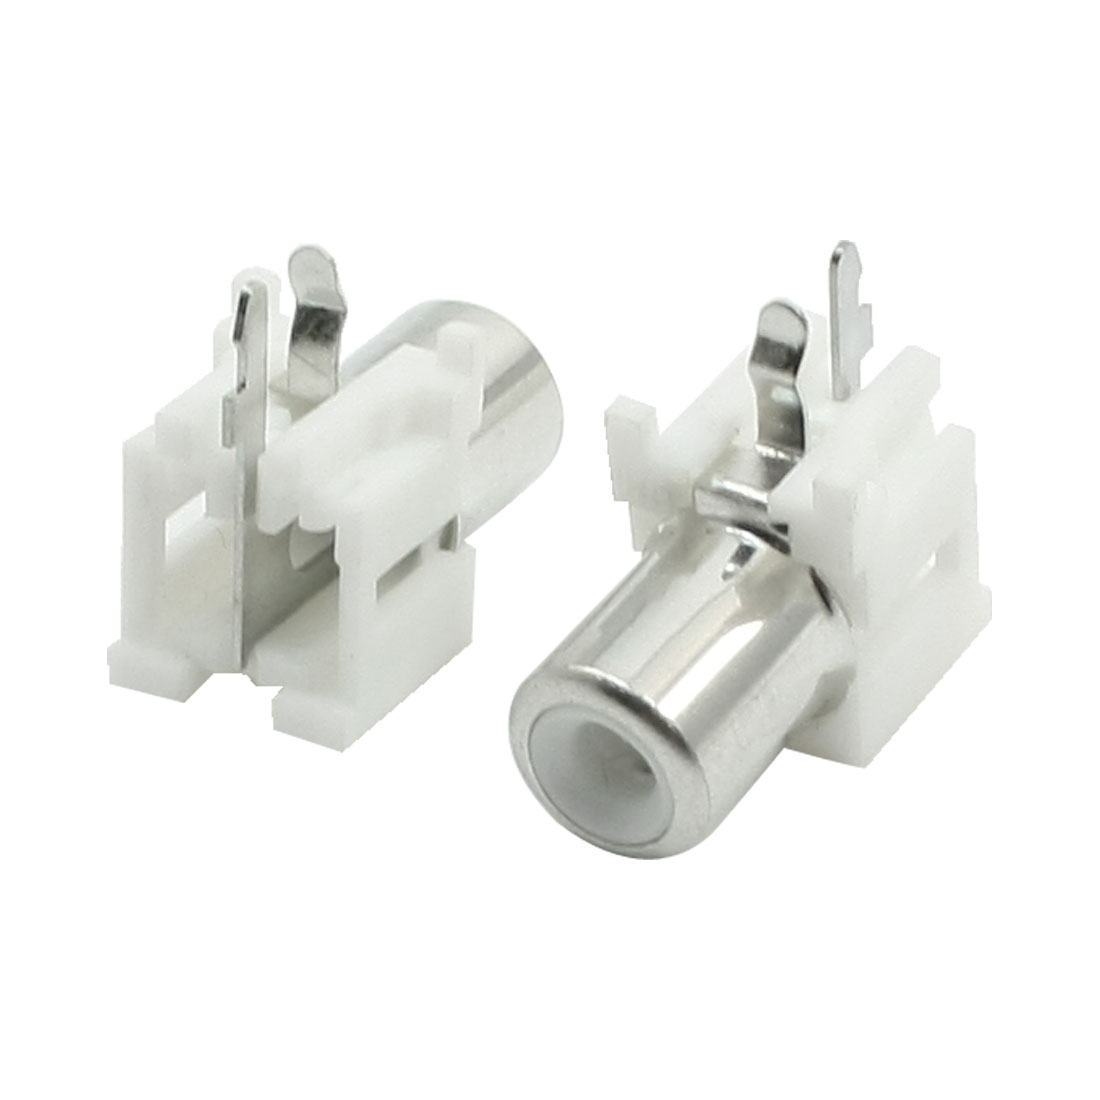 2Pcs AV Female Jack RCA Socket Connector White Silver Tone